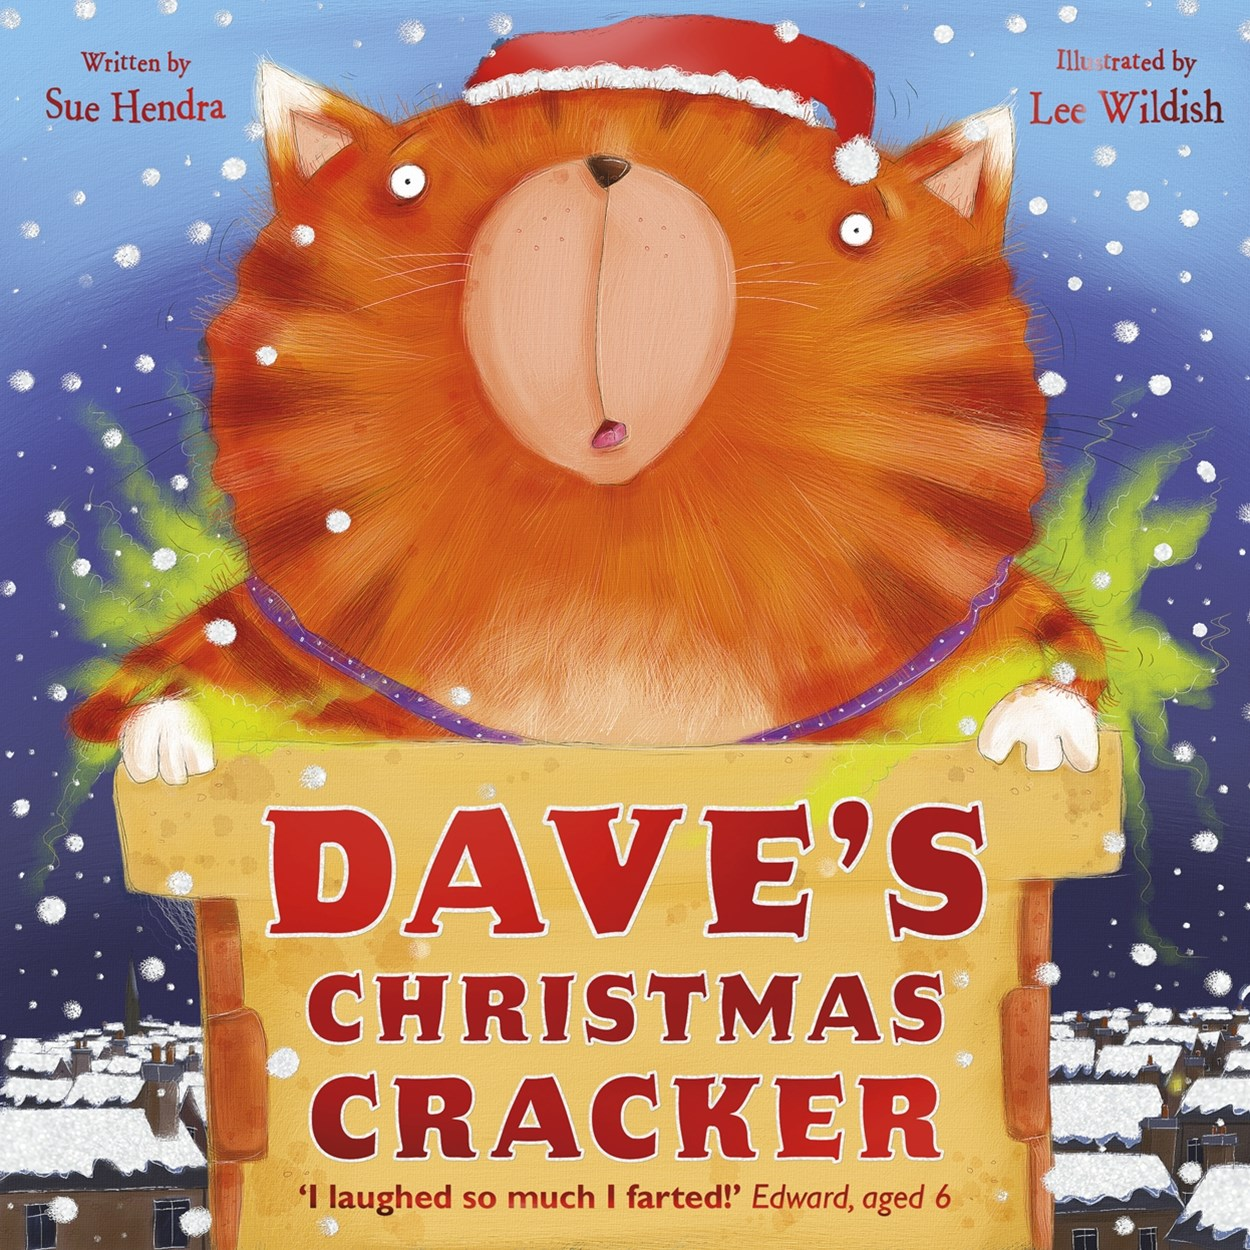 Dave: Dave's Christmas Cracker